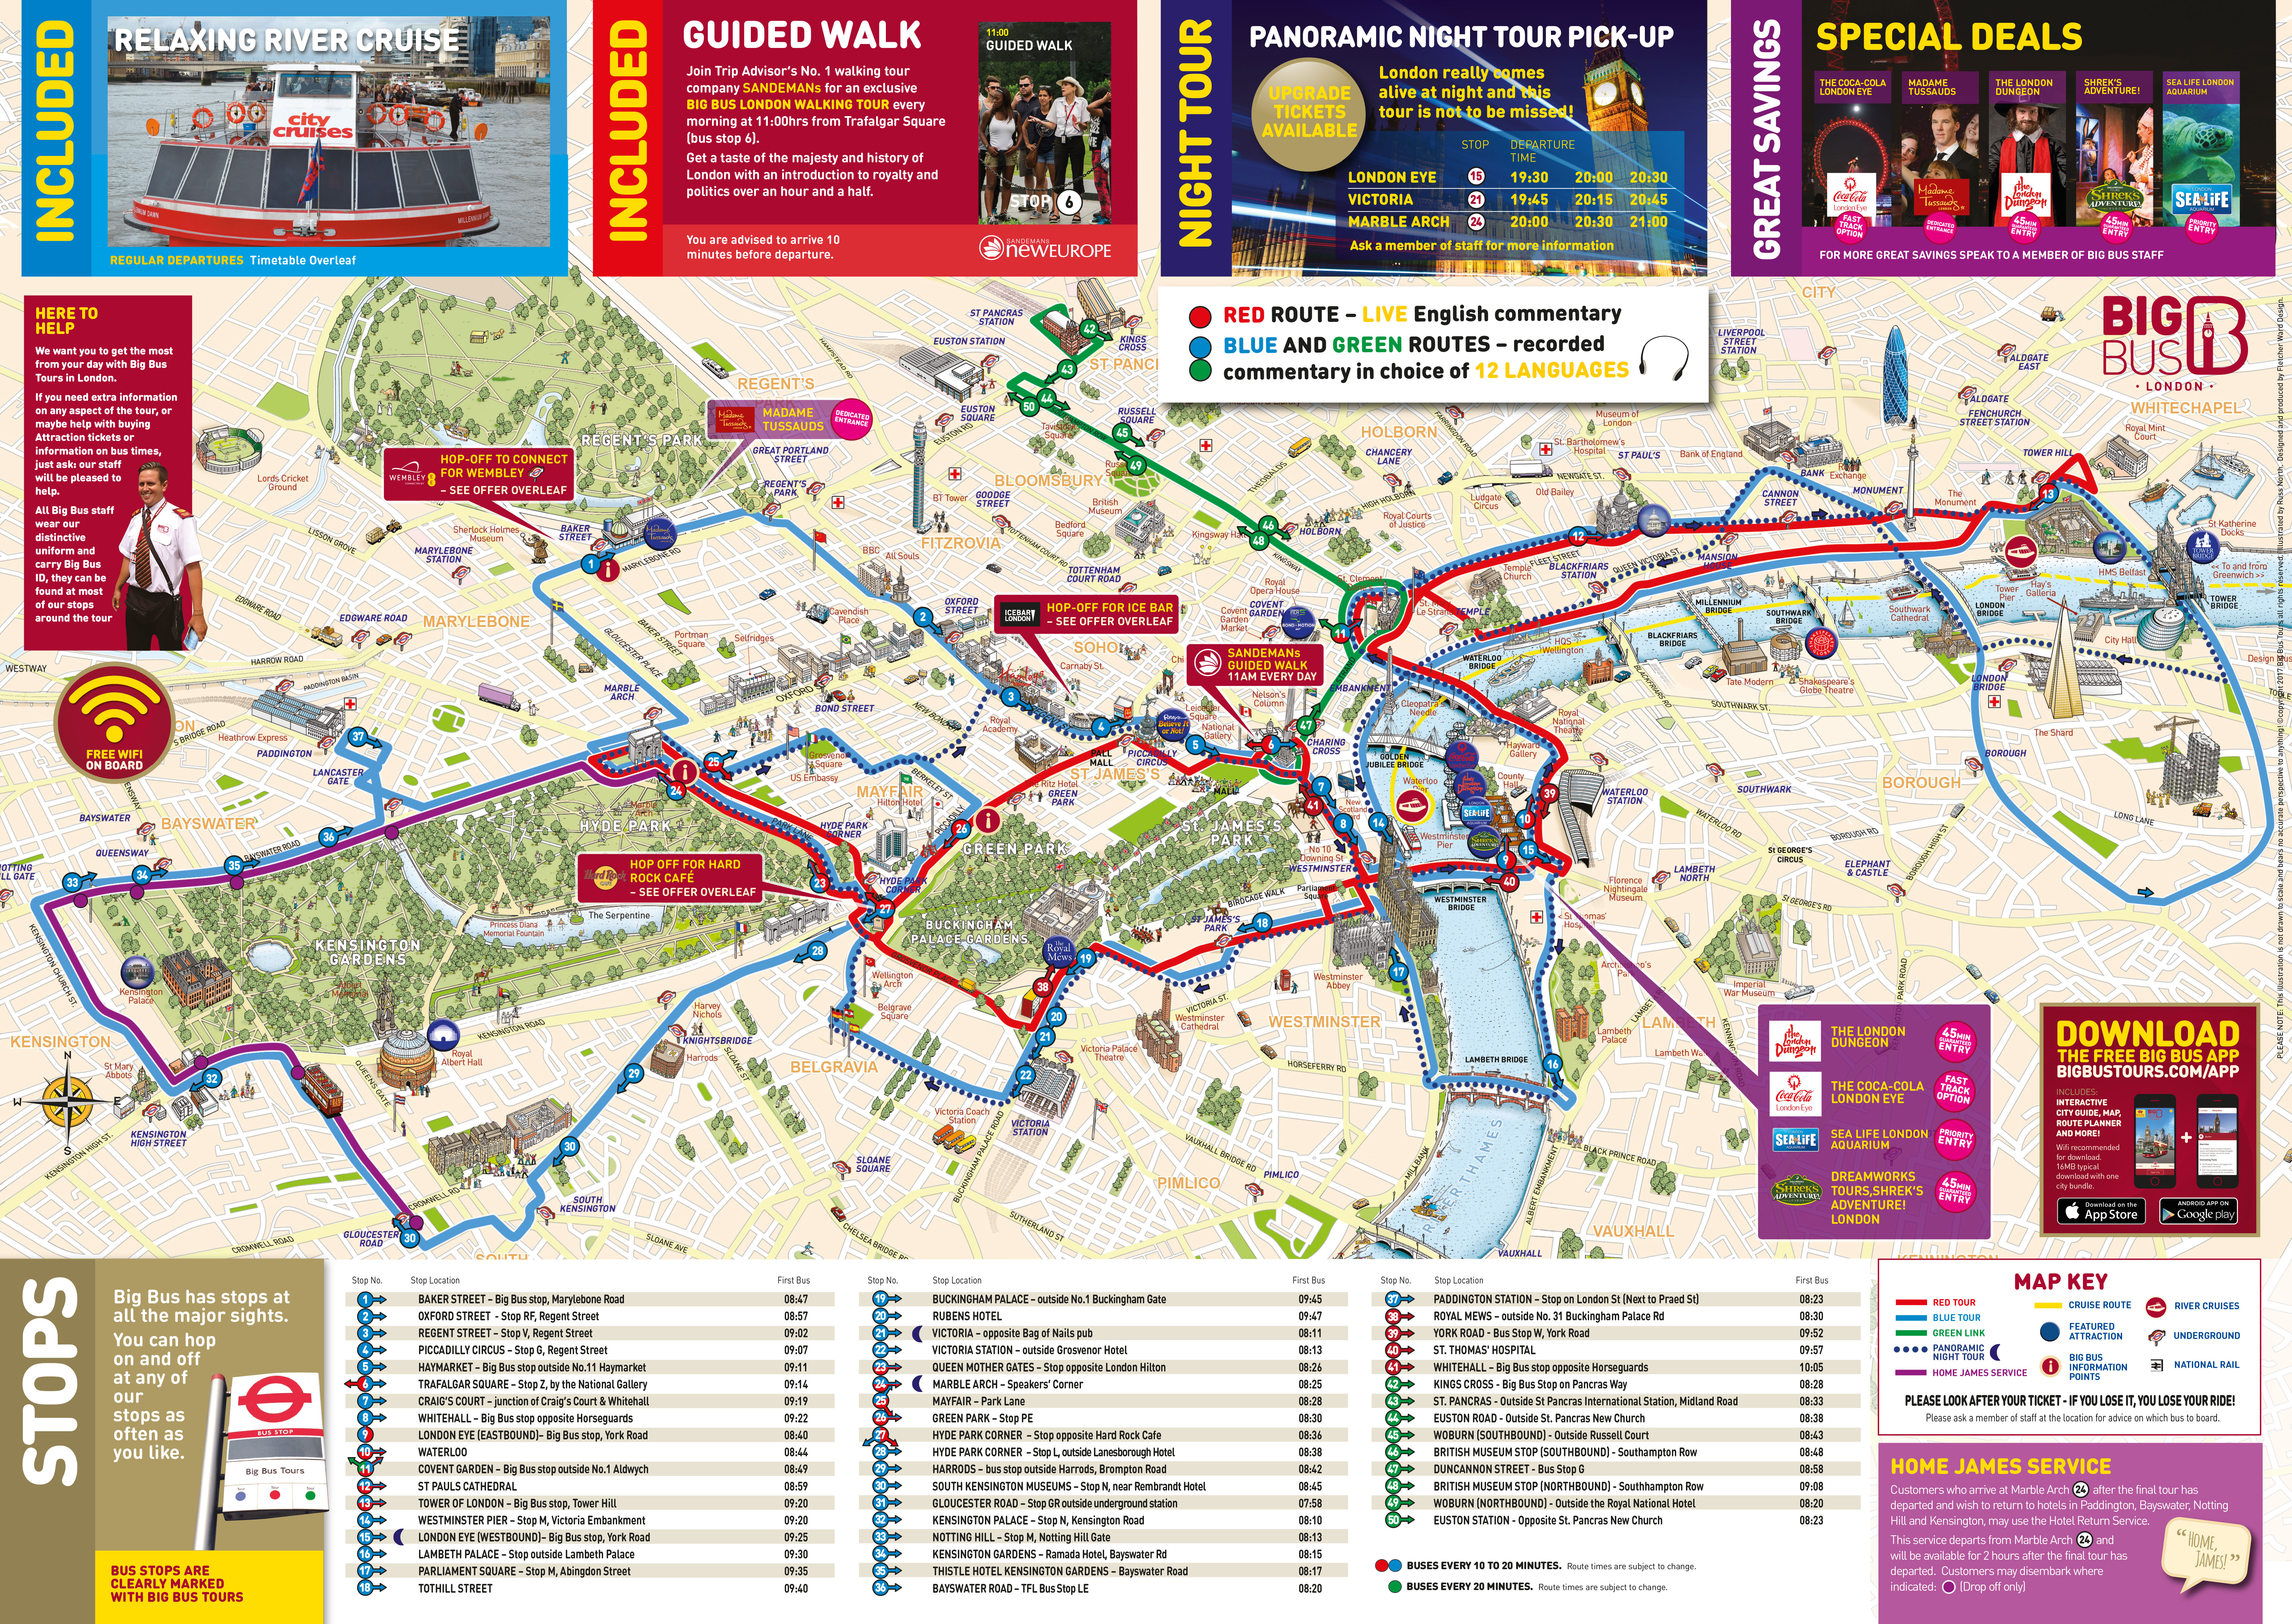 London Walking Tour Map Pdf.Big Bus London Hop On Hop Off Tour